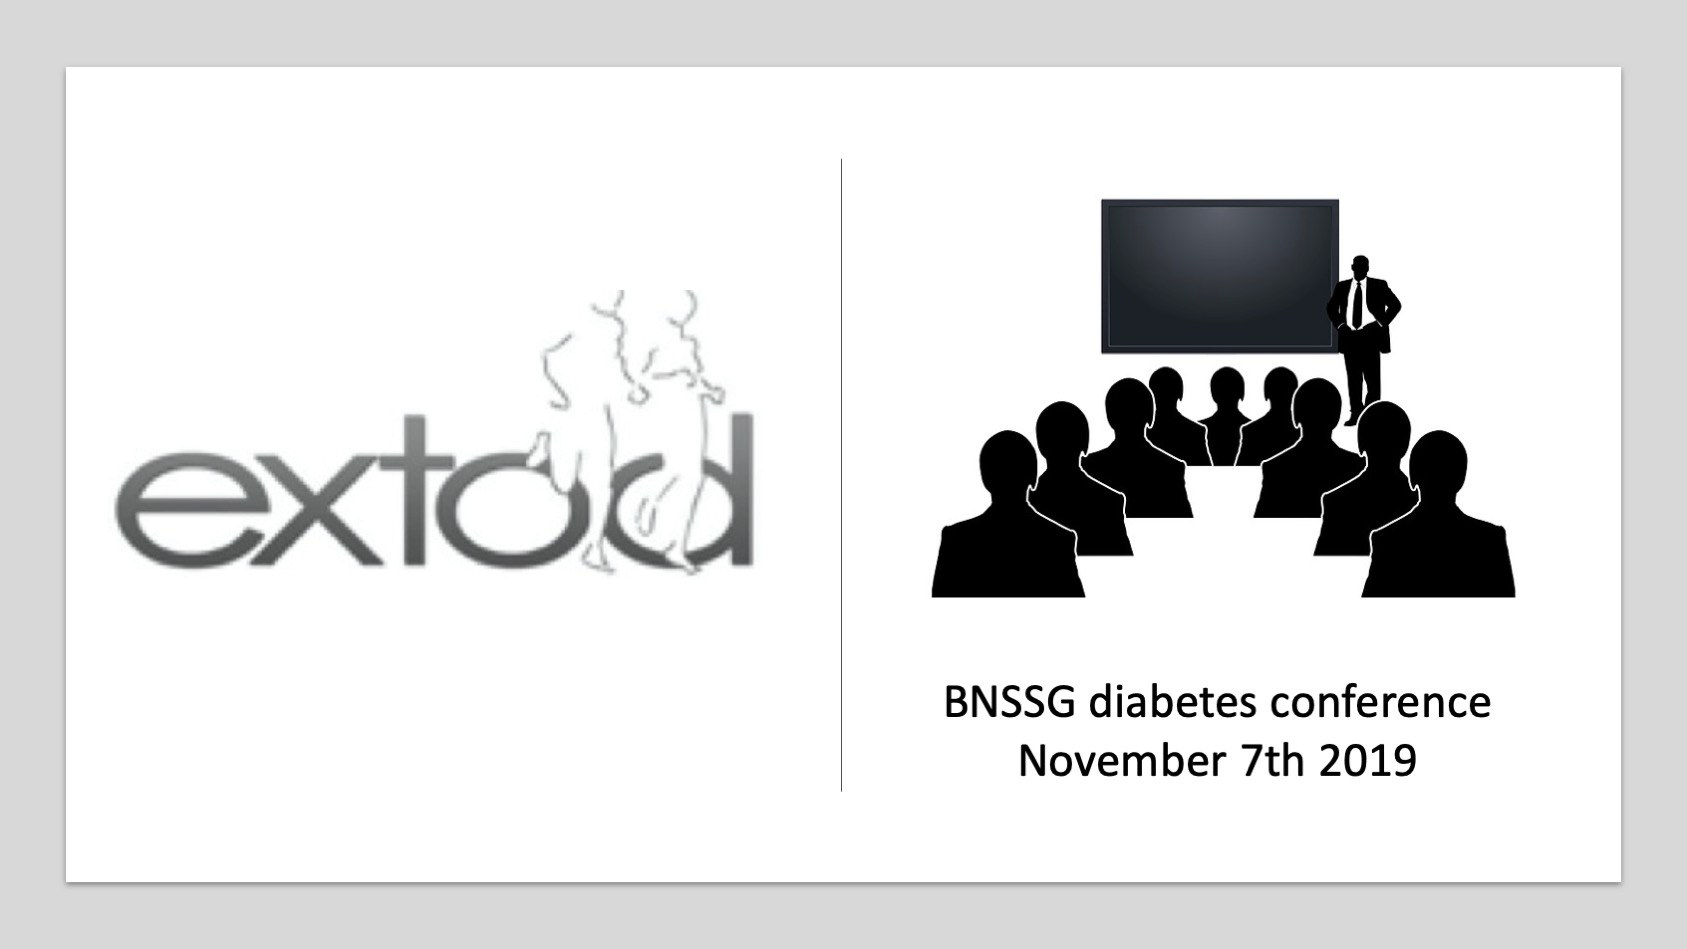 BNSSG diabetes conference november 7th 2019